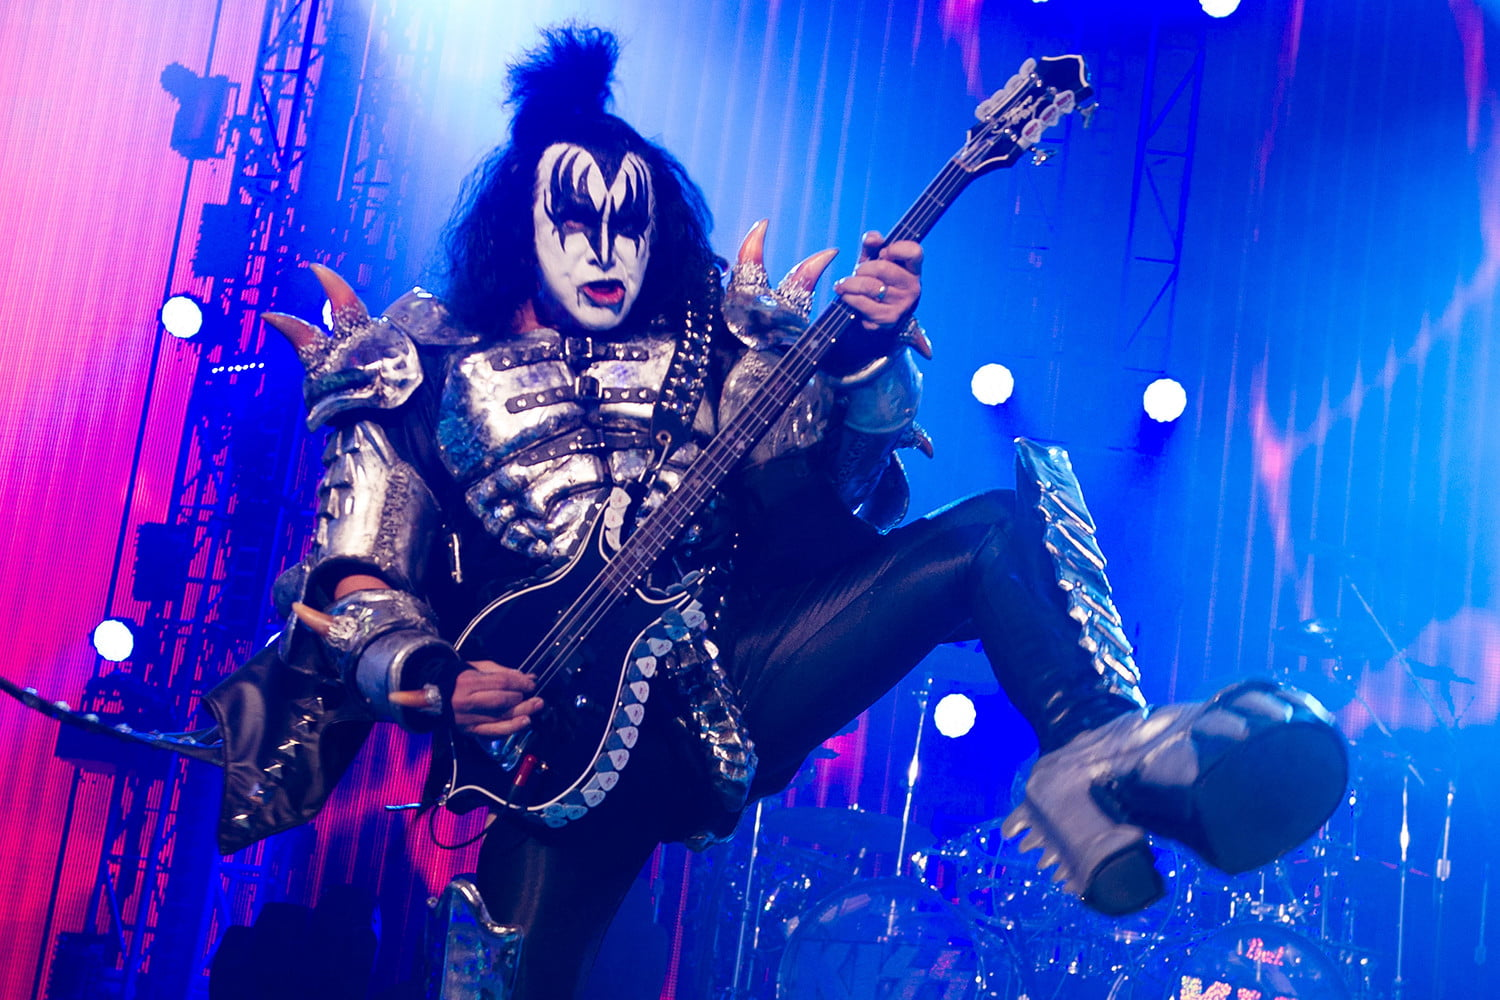 Interview Paul Stanley Of Kiss On Vinyl Streaming Atmos